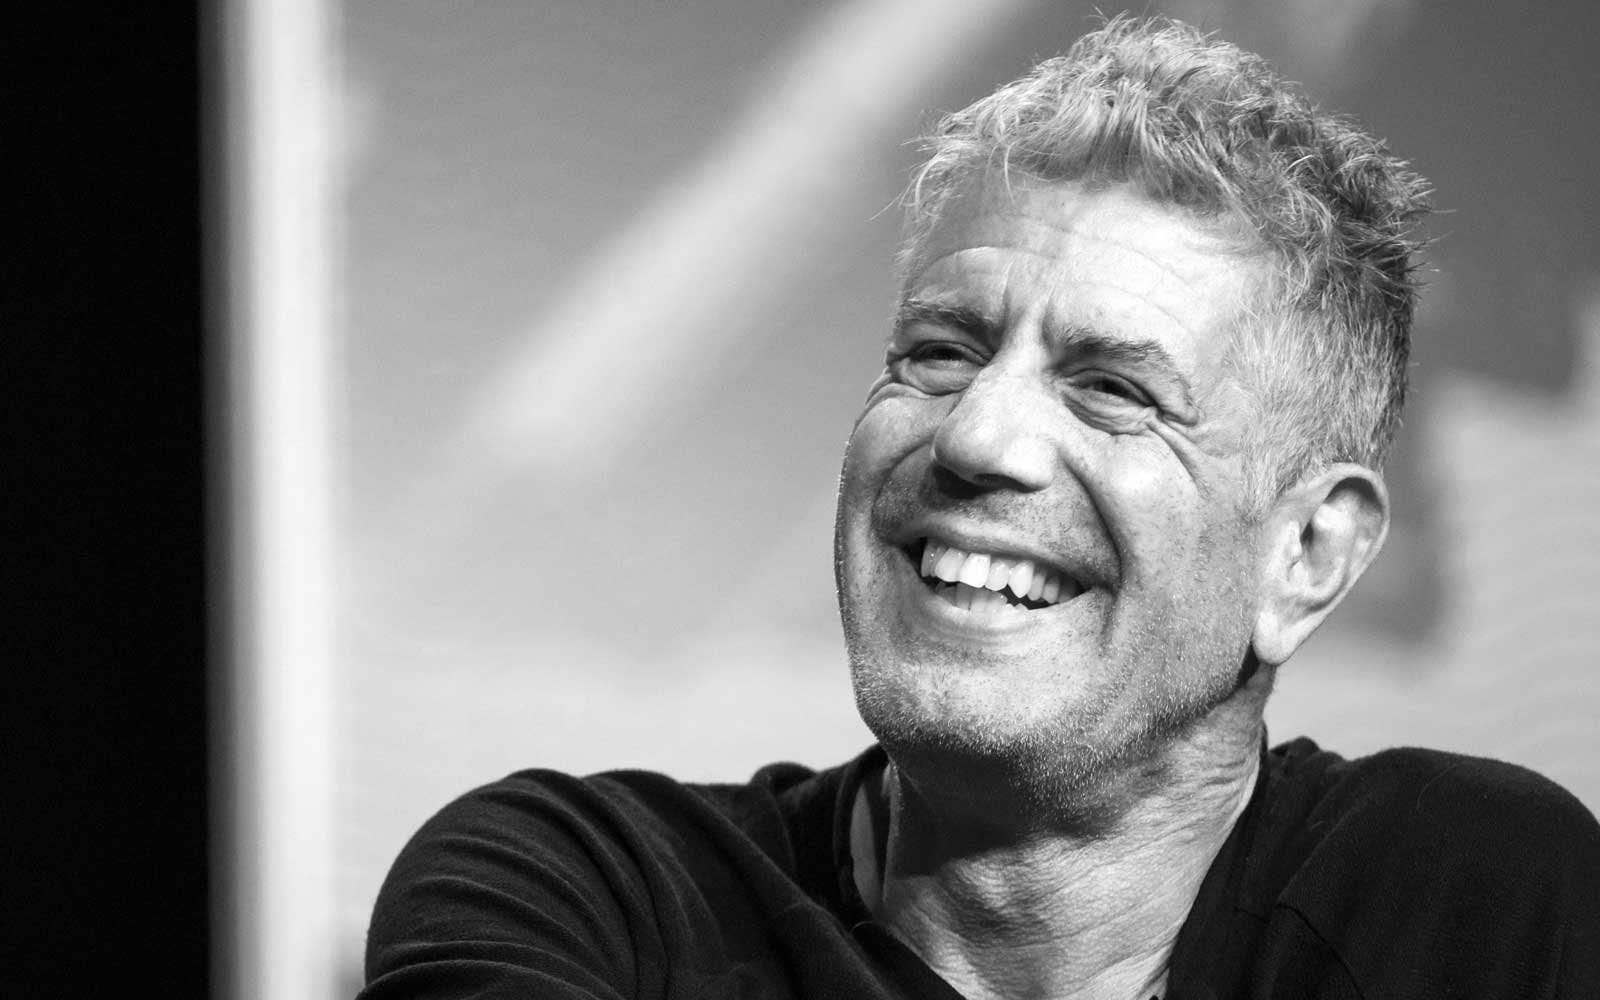 June 25 Has Been Declared 'Bourdain Day' — Here's How You Can Celebrate Anthony Bourdain's Legacy